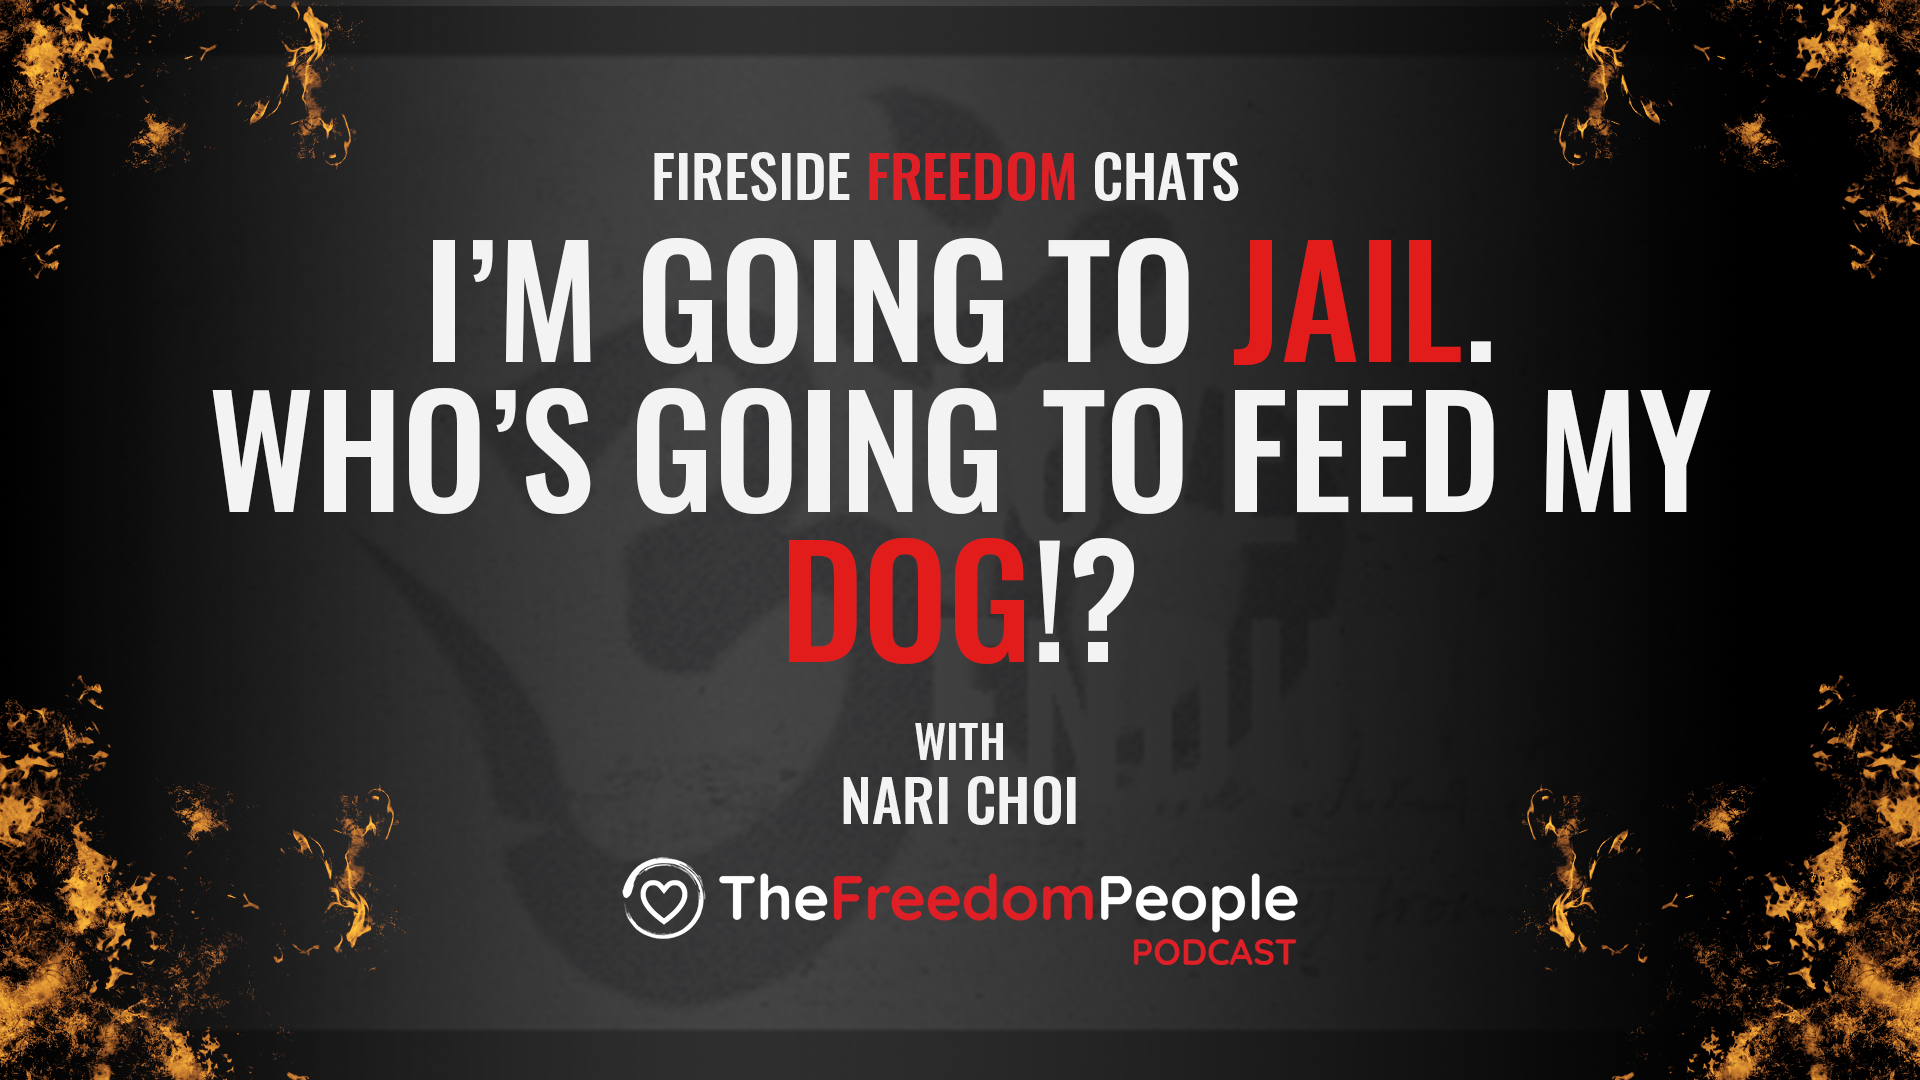 I'm Going to Jail. Who is going to feed my dog?!